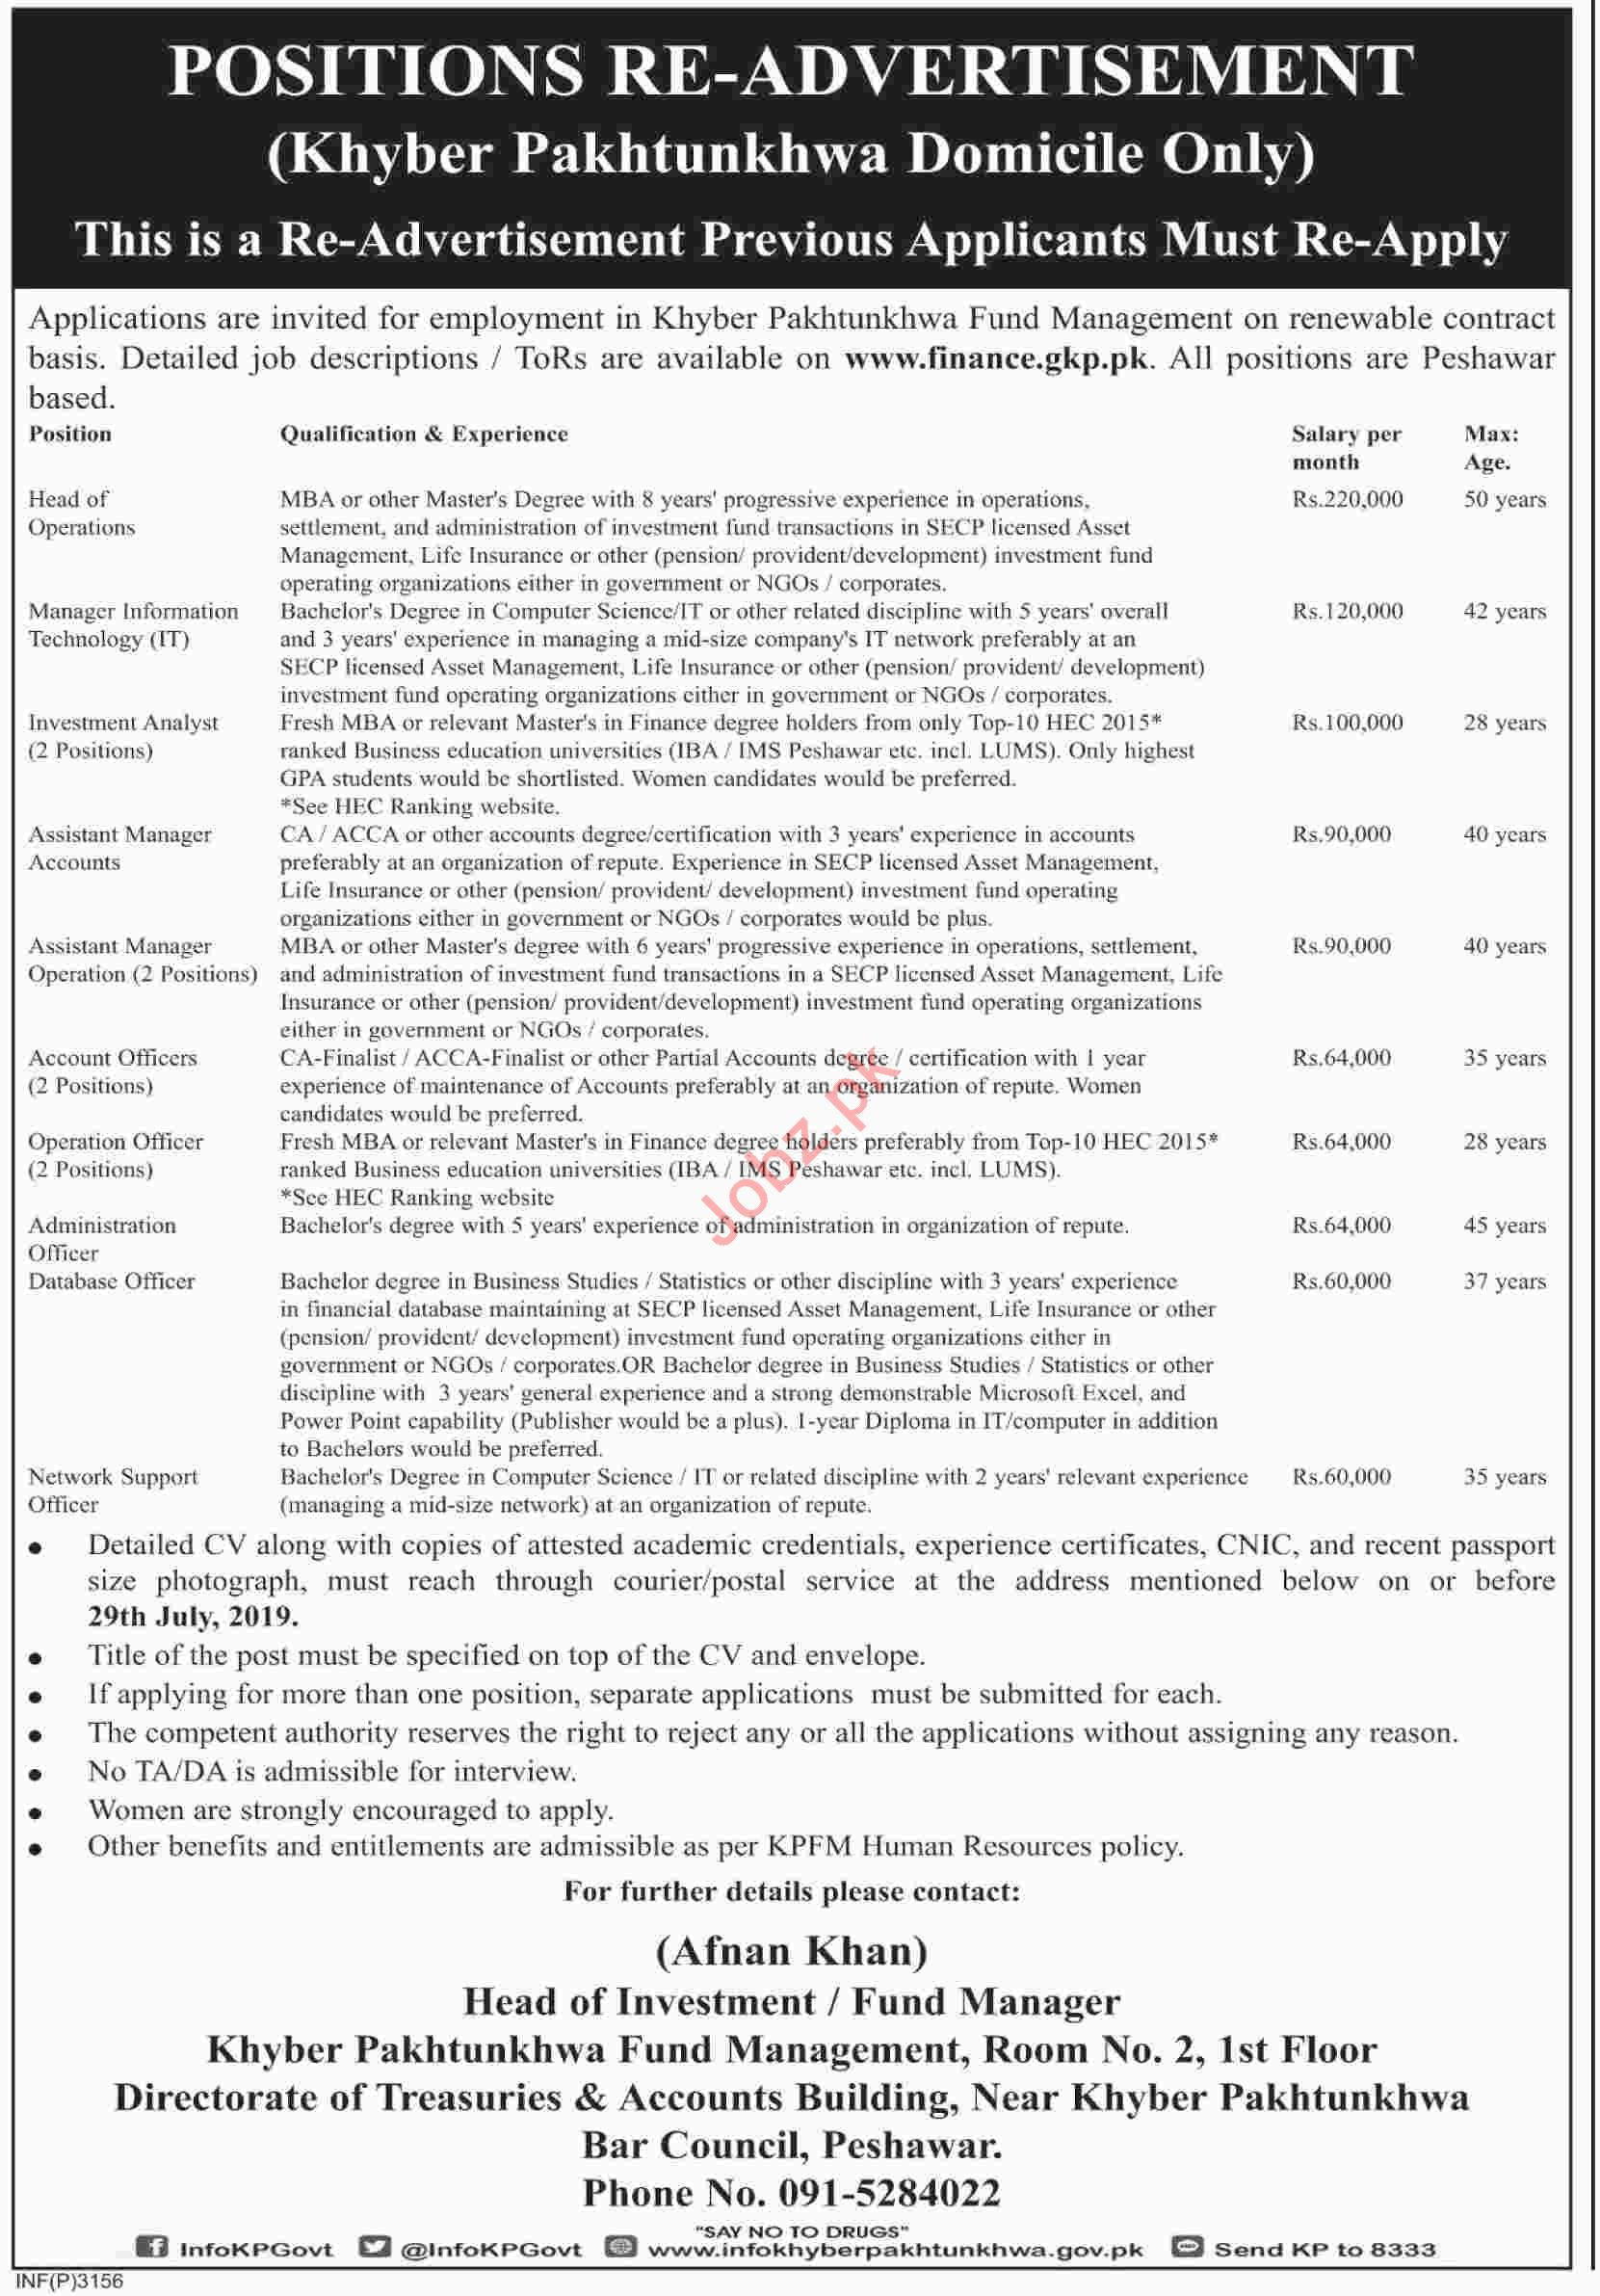 KP Finance Department Jobs 2019 for Managers